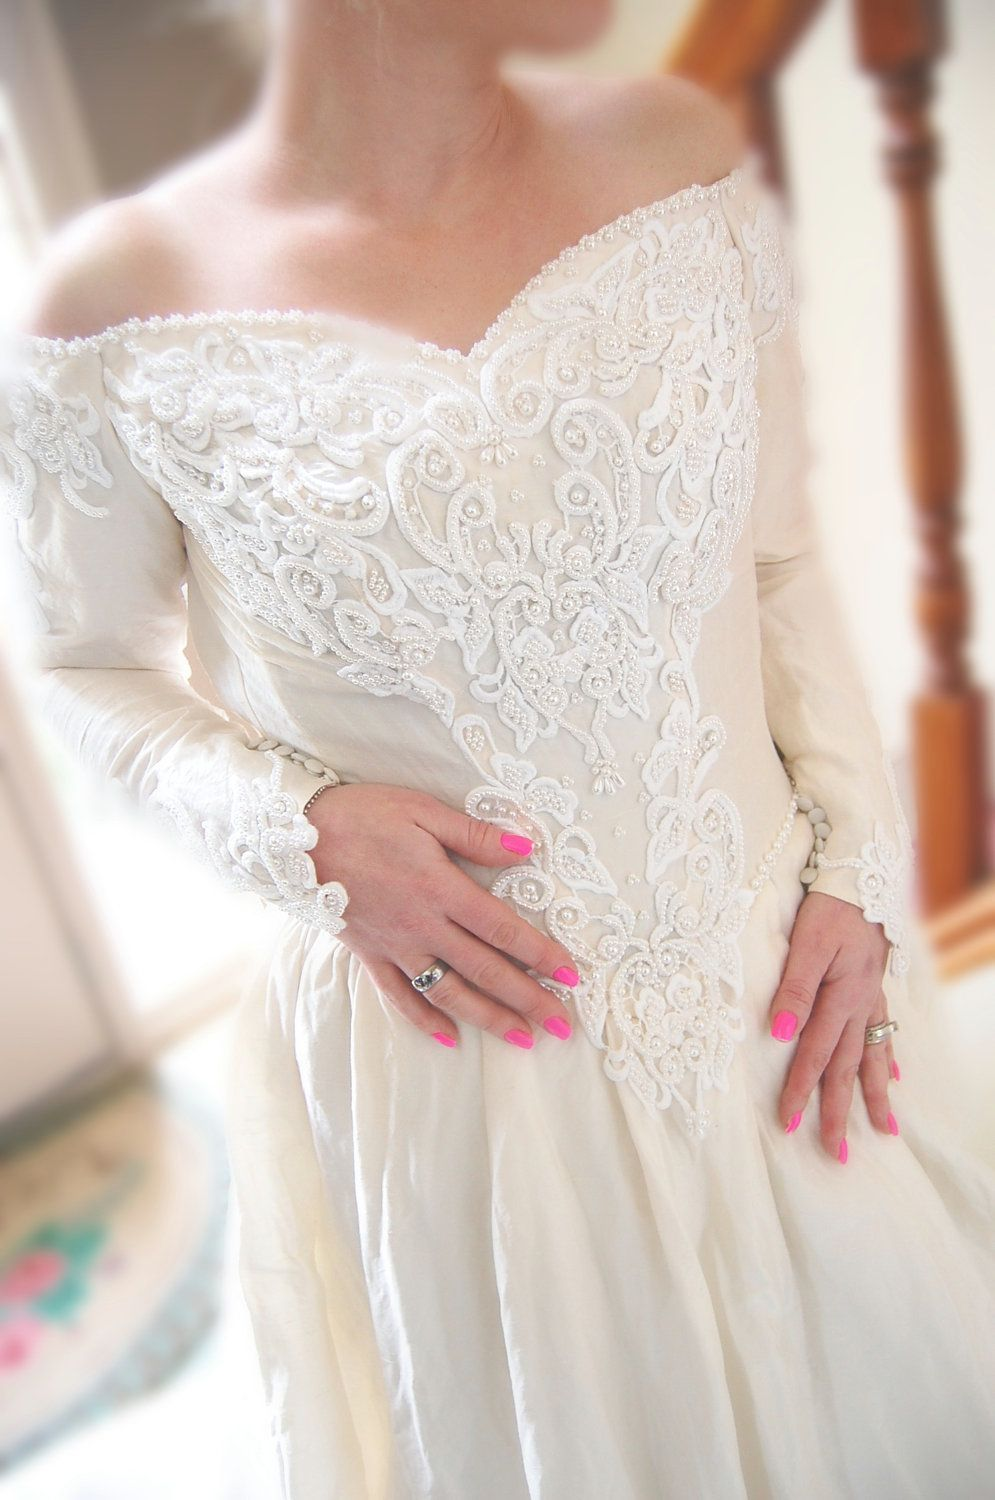 Image Result For Wedding Dress With Pointed Sleeves Wedding Dress Blog Silk Wedding Gown Wedding Dresses [ 1500 x 995 Pixel ]